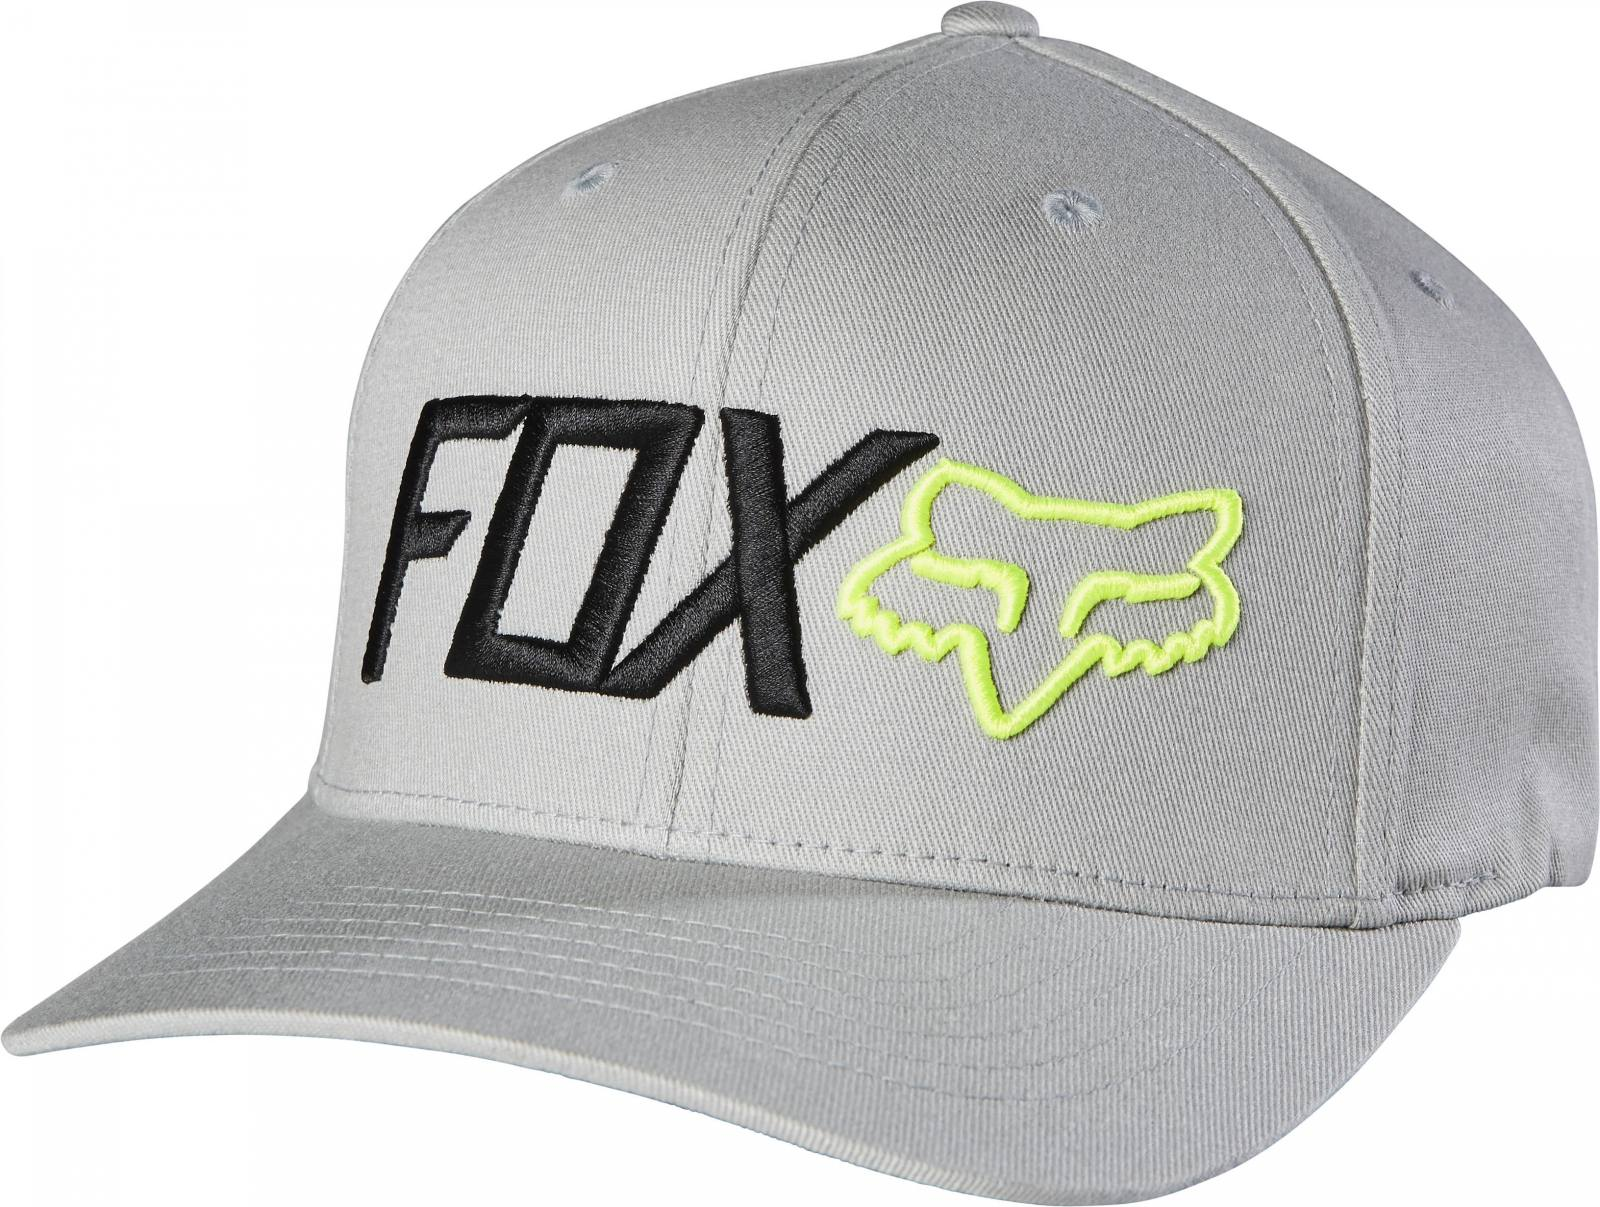 finest selection bc132 6369a switzerland fox racing big boys traded trucker adjustable hats b4a68 38285   new zealand scathe flexfit hat for sale in fort dodge ia racing unlimited  515 ...